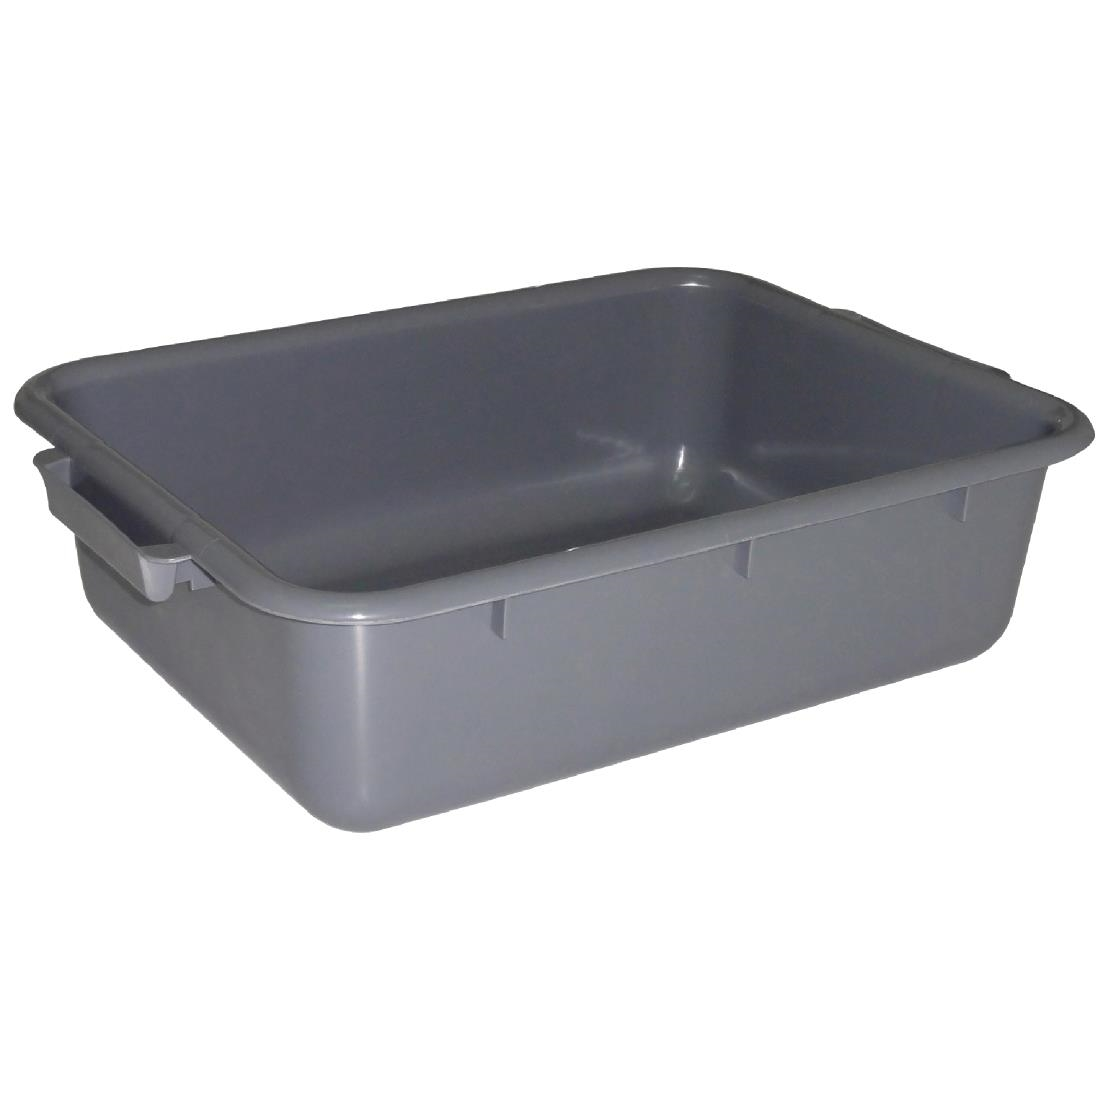 vogue plastic storage box - j849 - buy online at nisbets